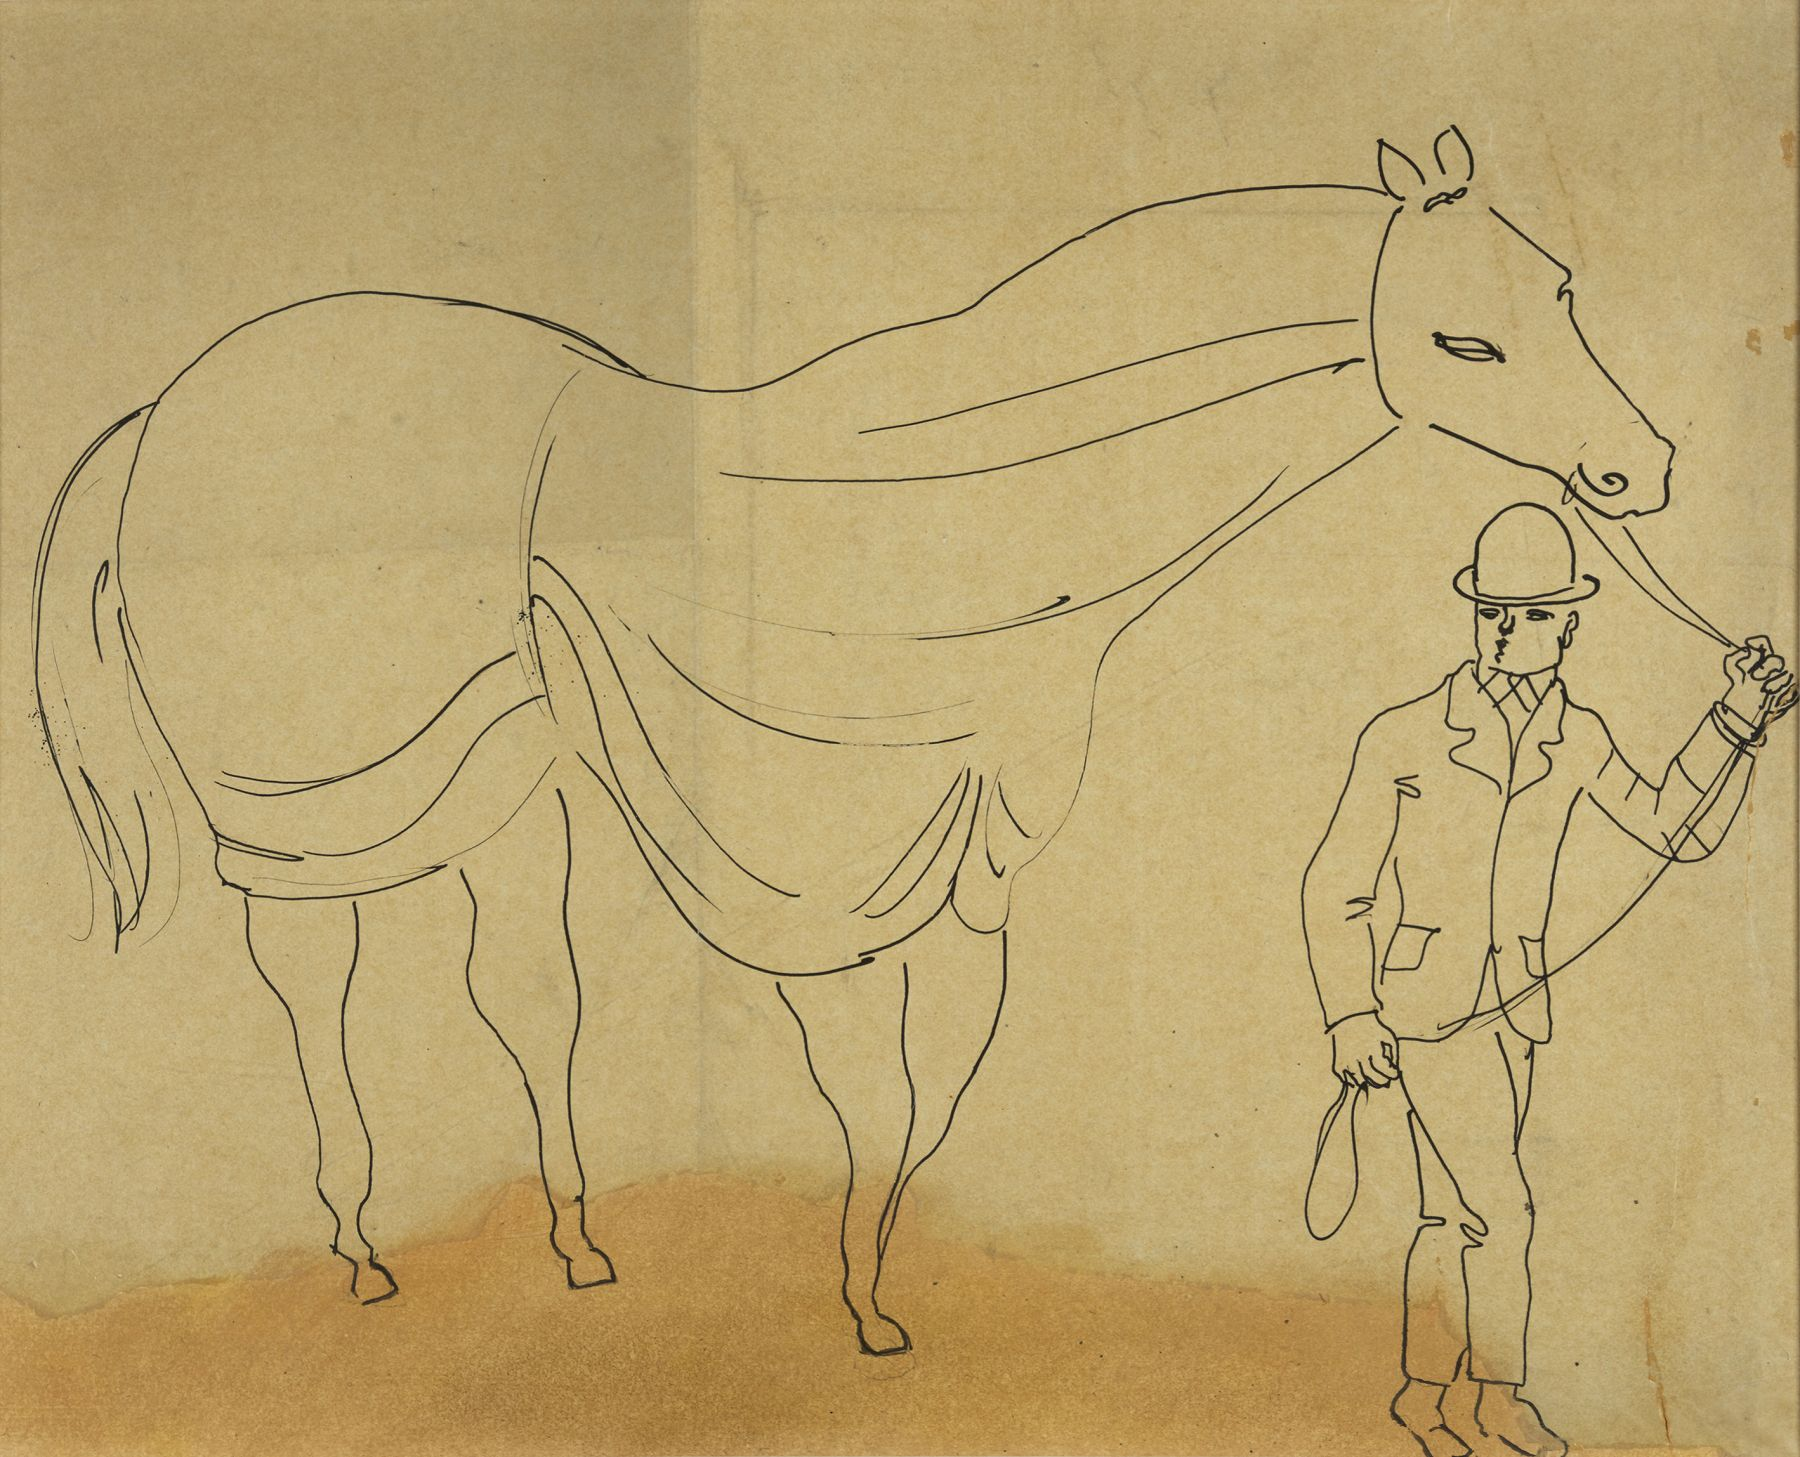 Raoul Dufy  Cheval et Son Jockey, c. 1926    Indian ink on paper 17 3/4 x 21 1/4 inches